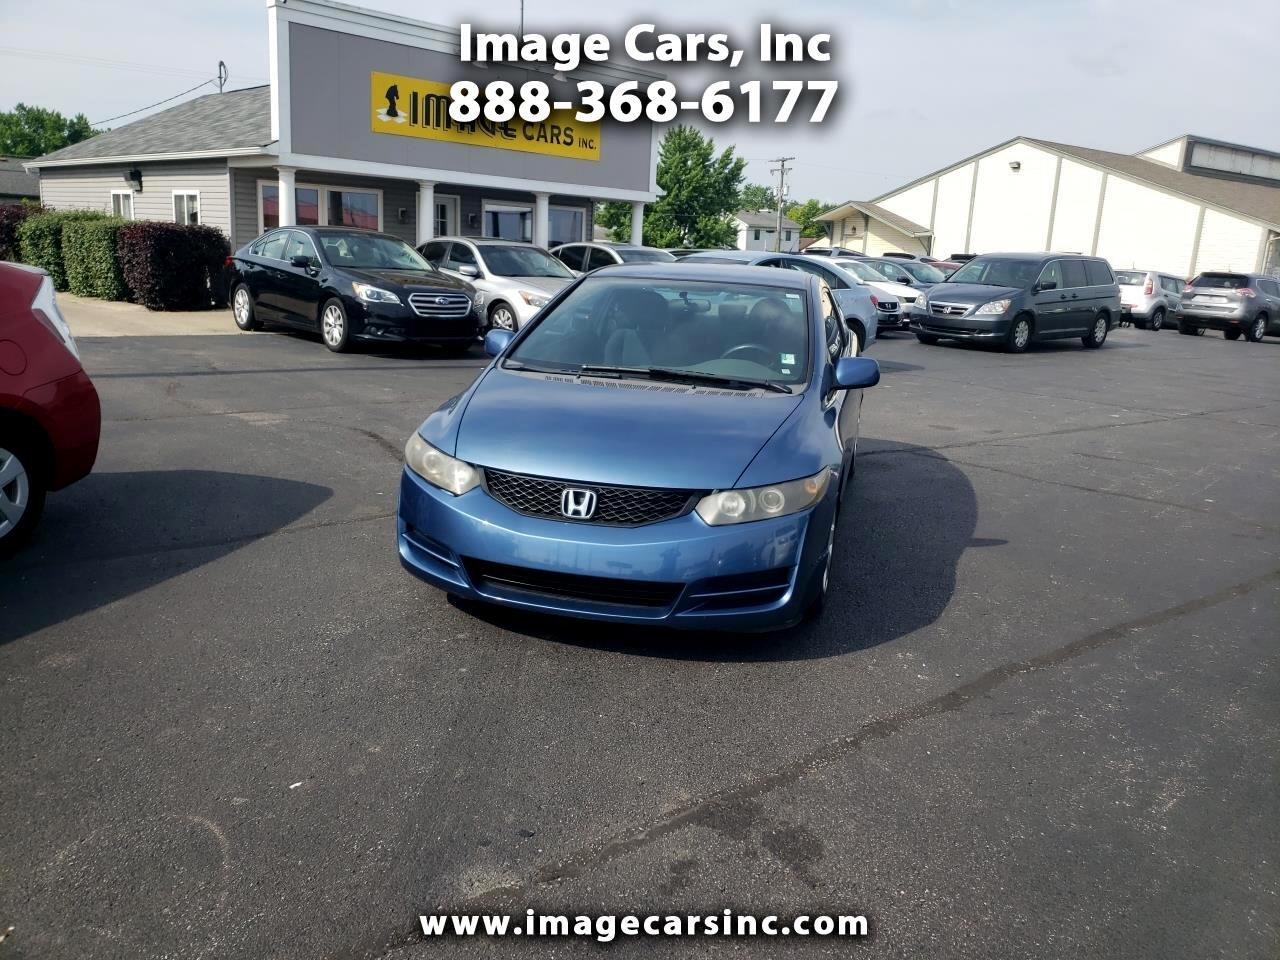 2010 Honda Civic LX Coupe 5-Speed MT